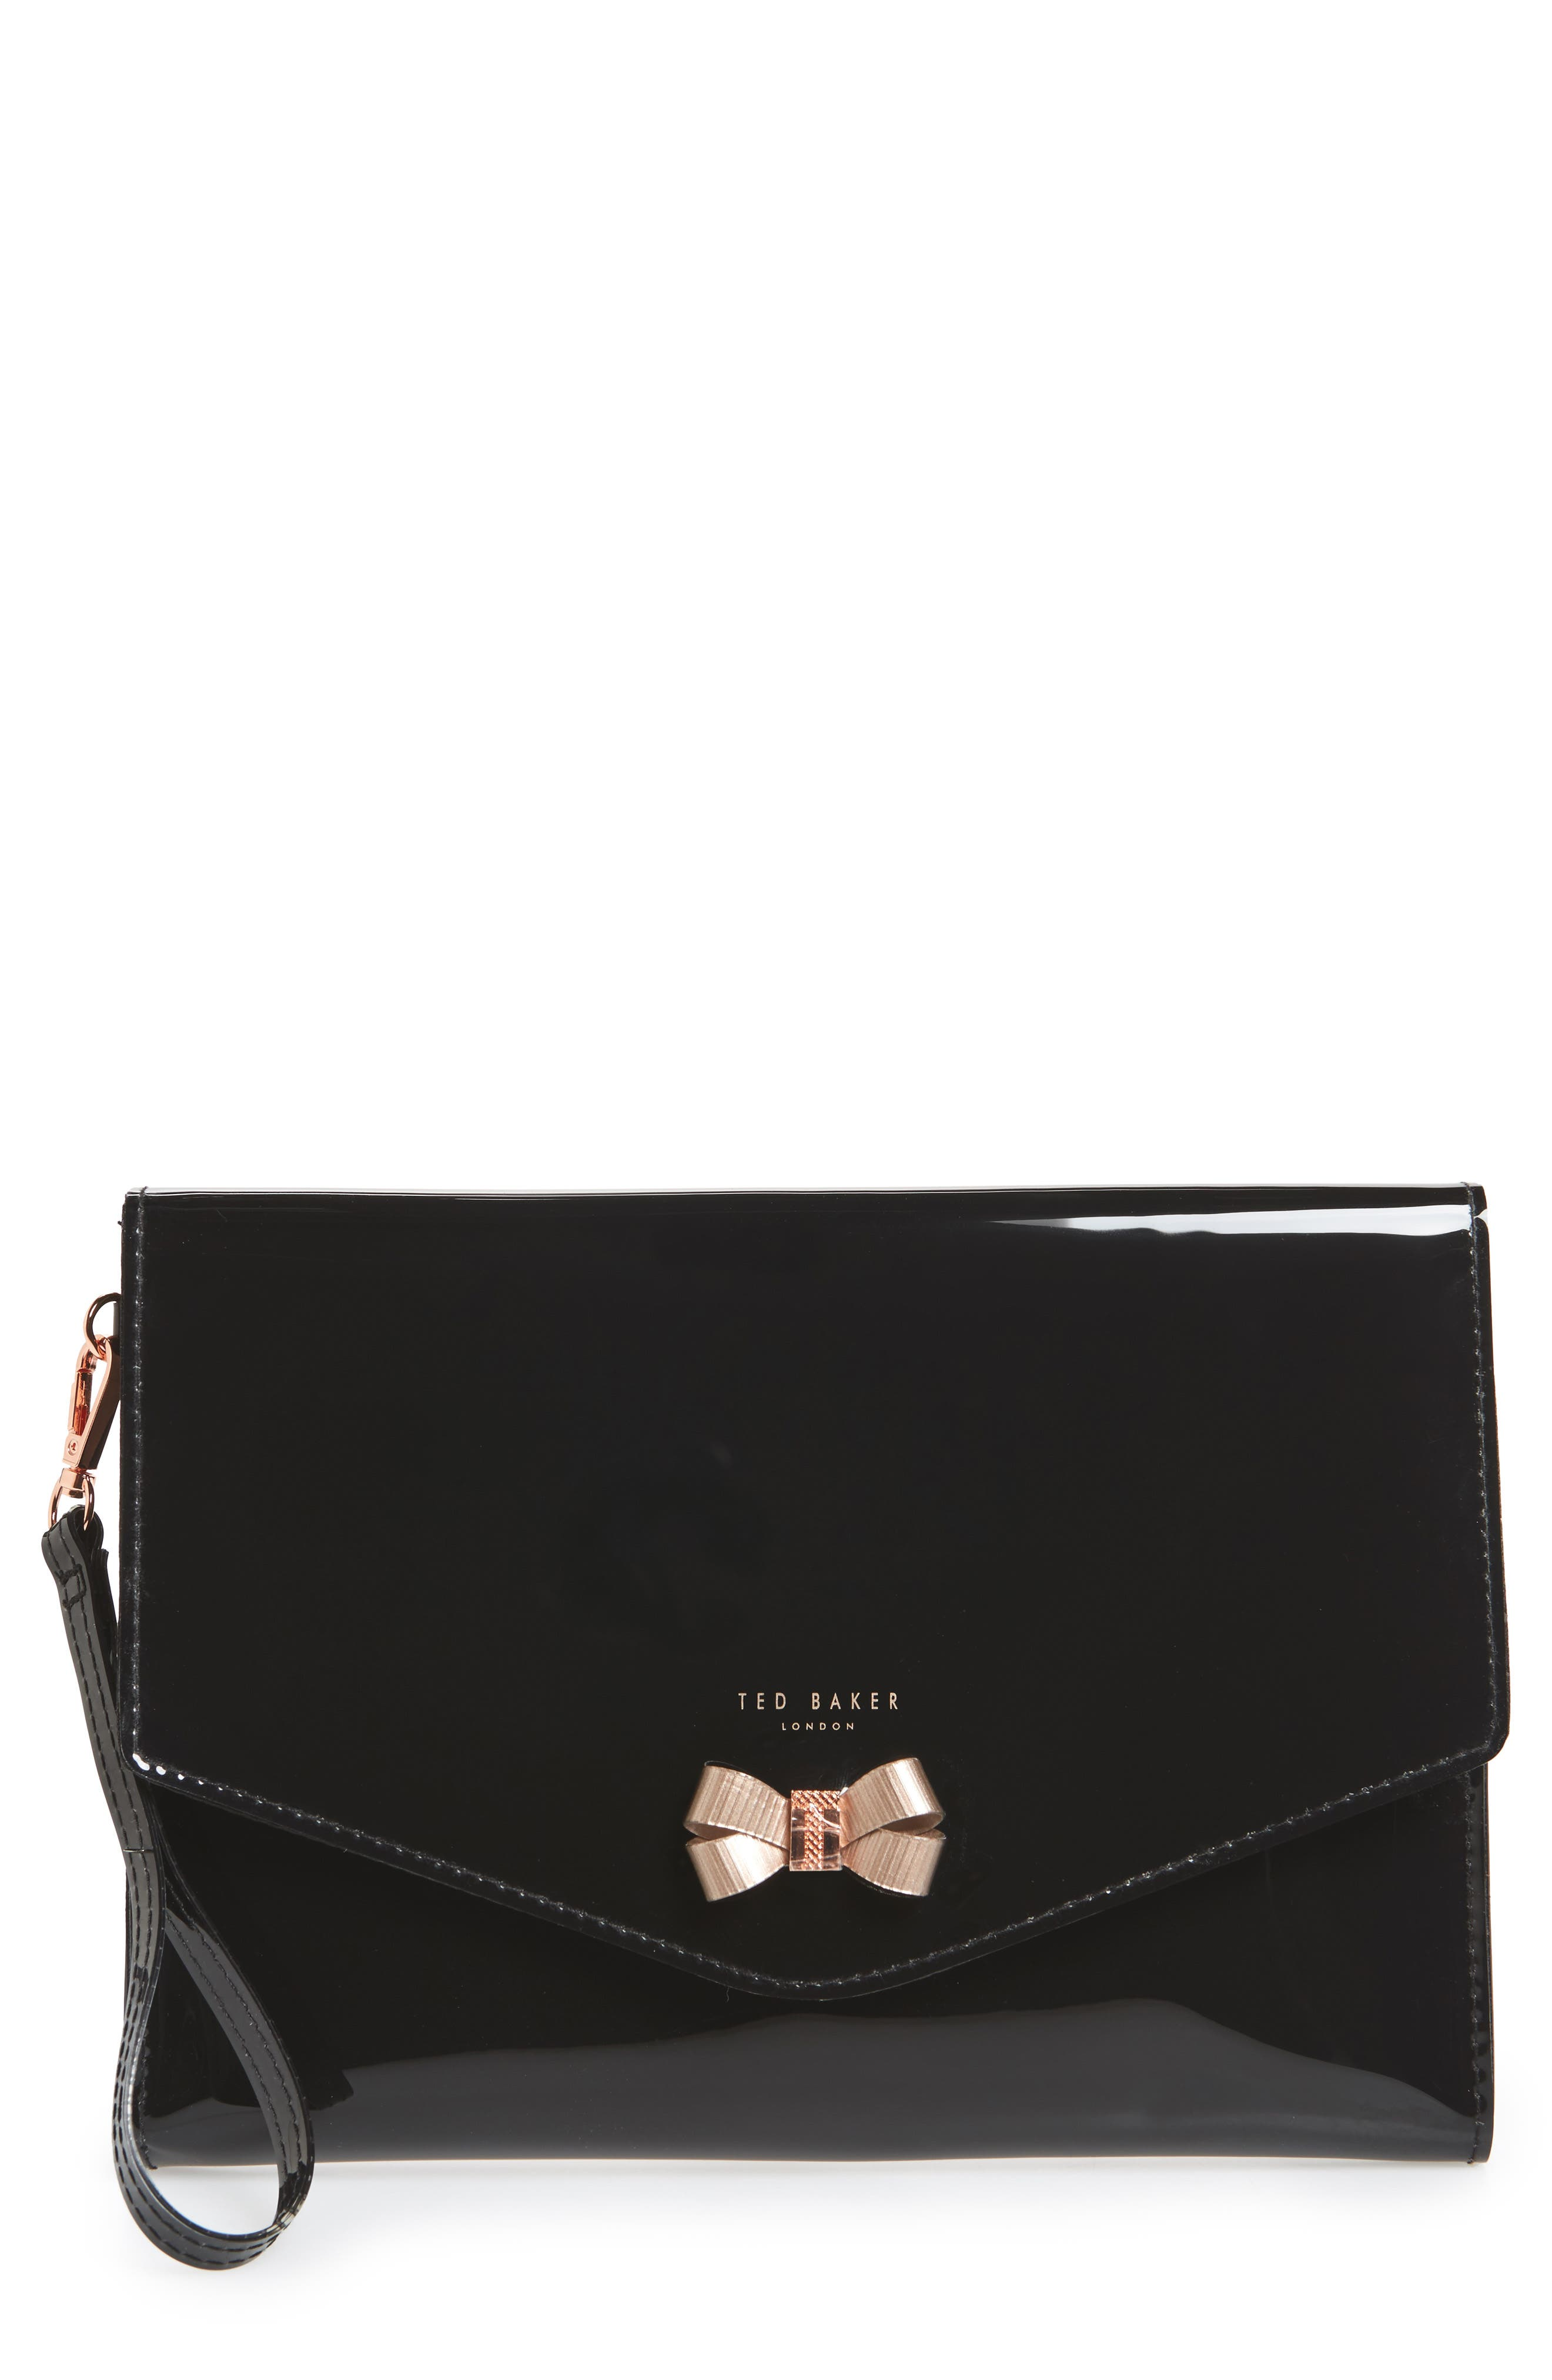 Main Image - Ted Baker London Luanne iPad Mini 4 Envelope Clutch